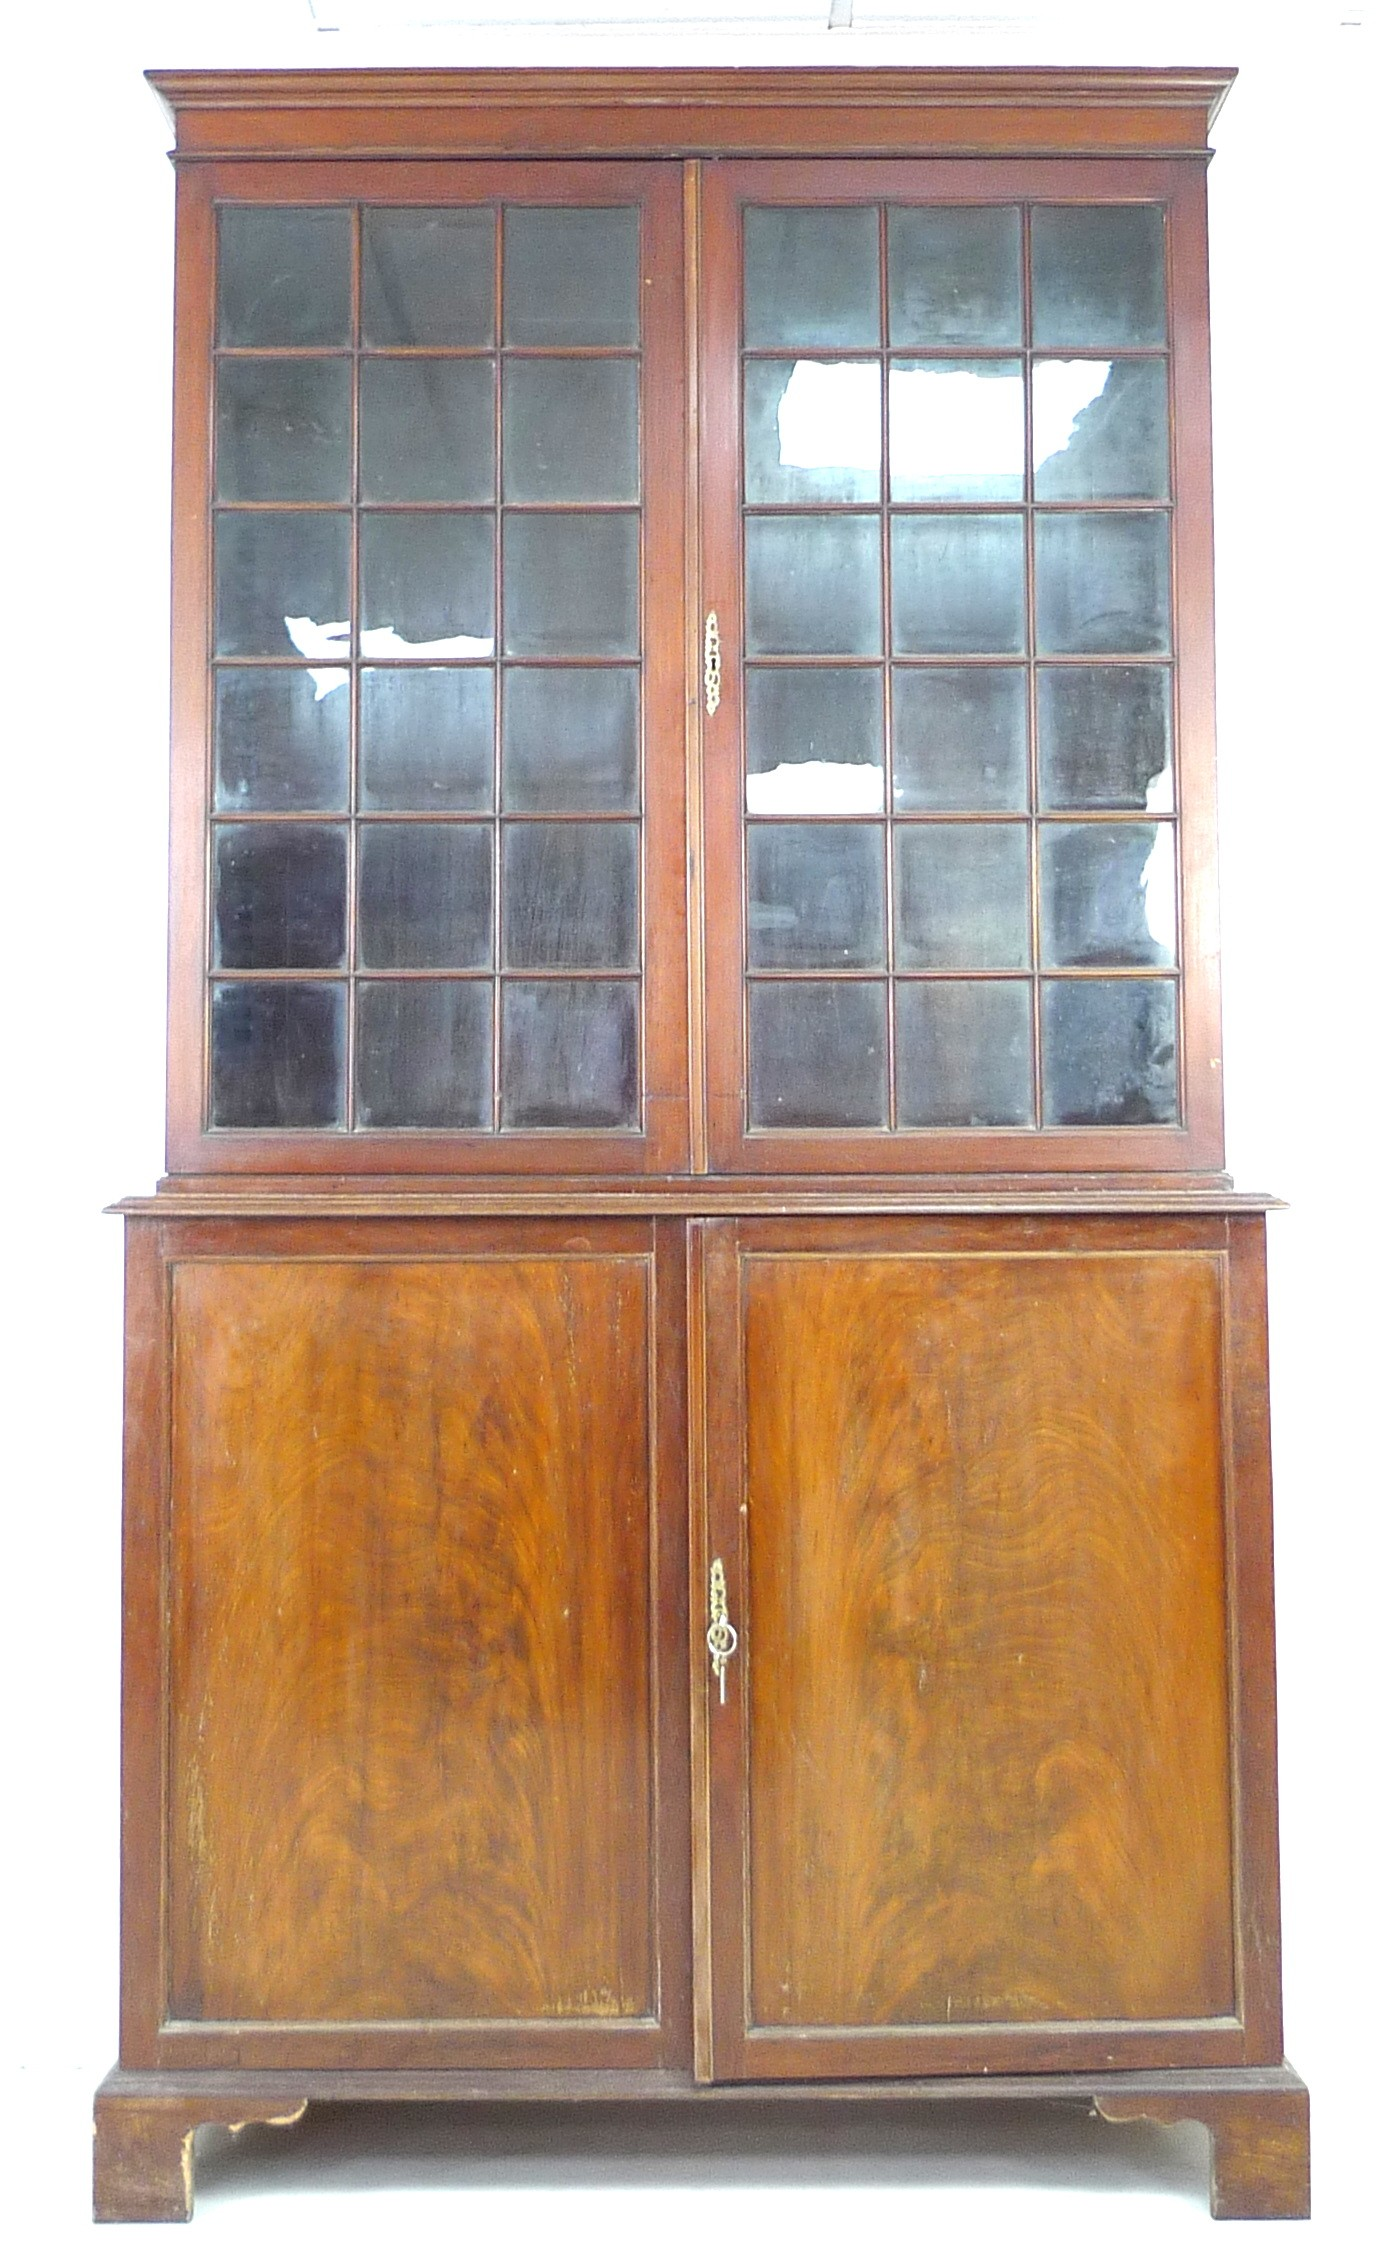 An Edwardian mahogany bookcase, with astragal glazed double doors, above a cupboard base, raised